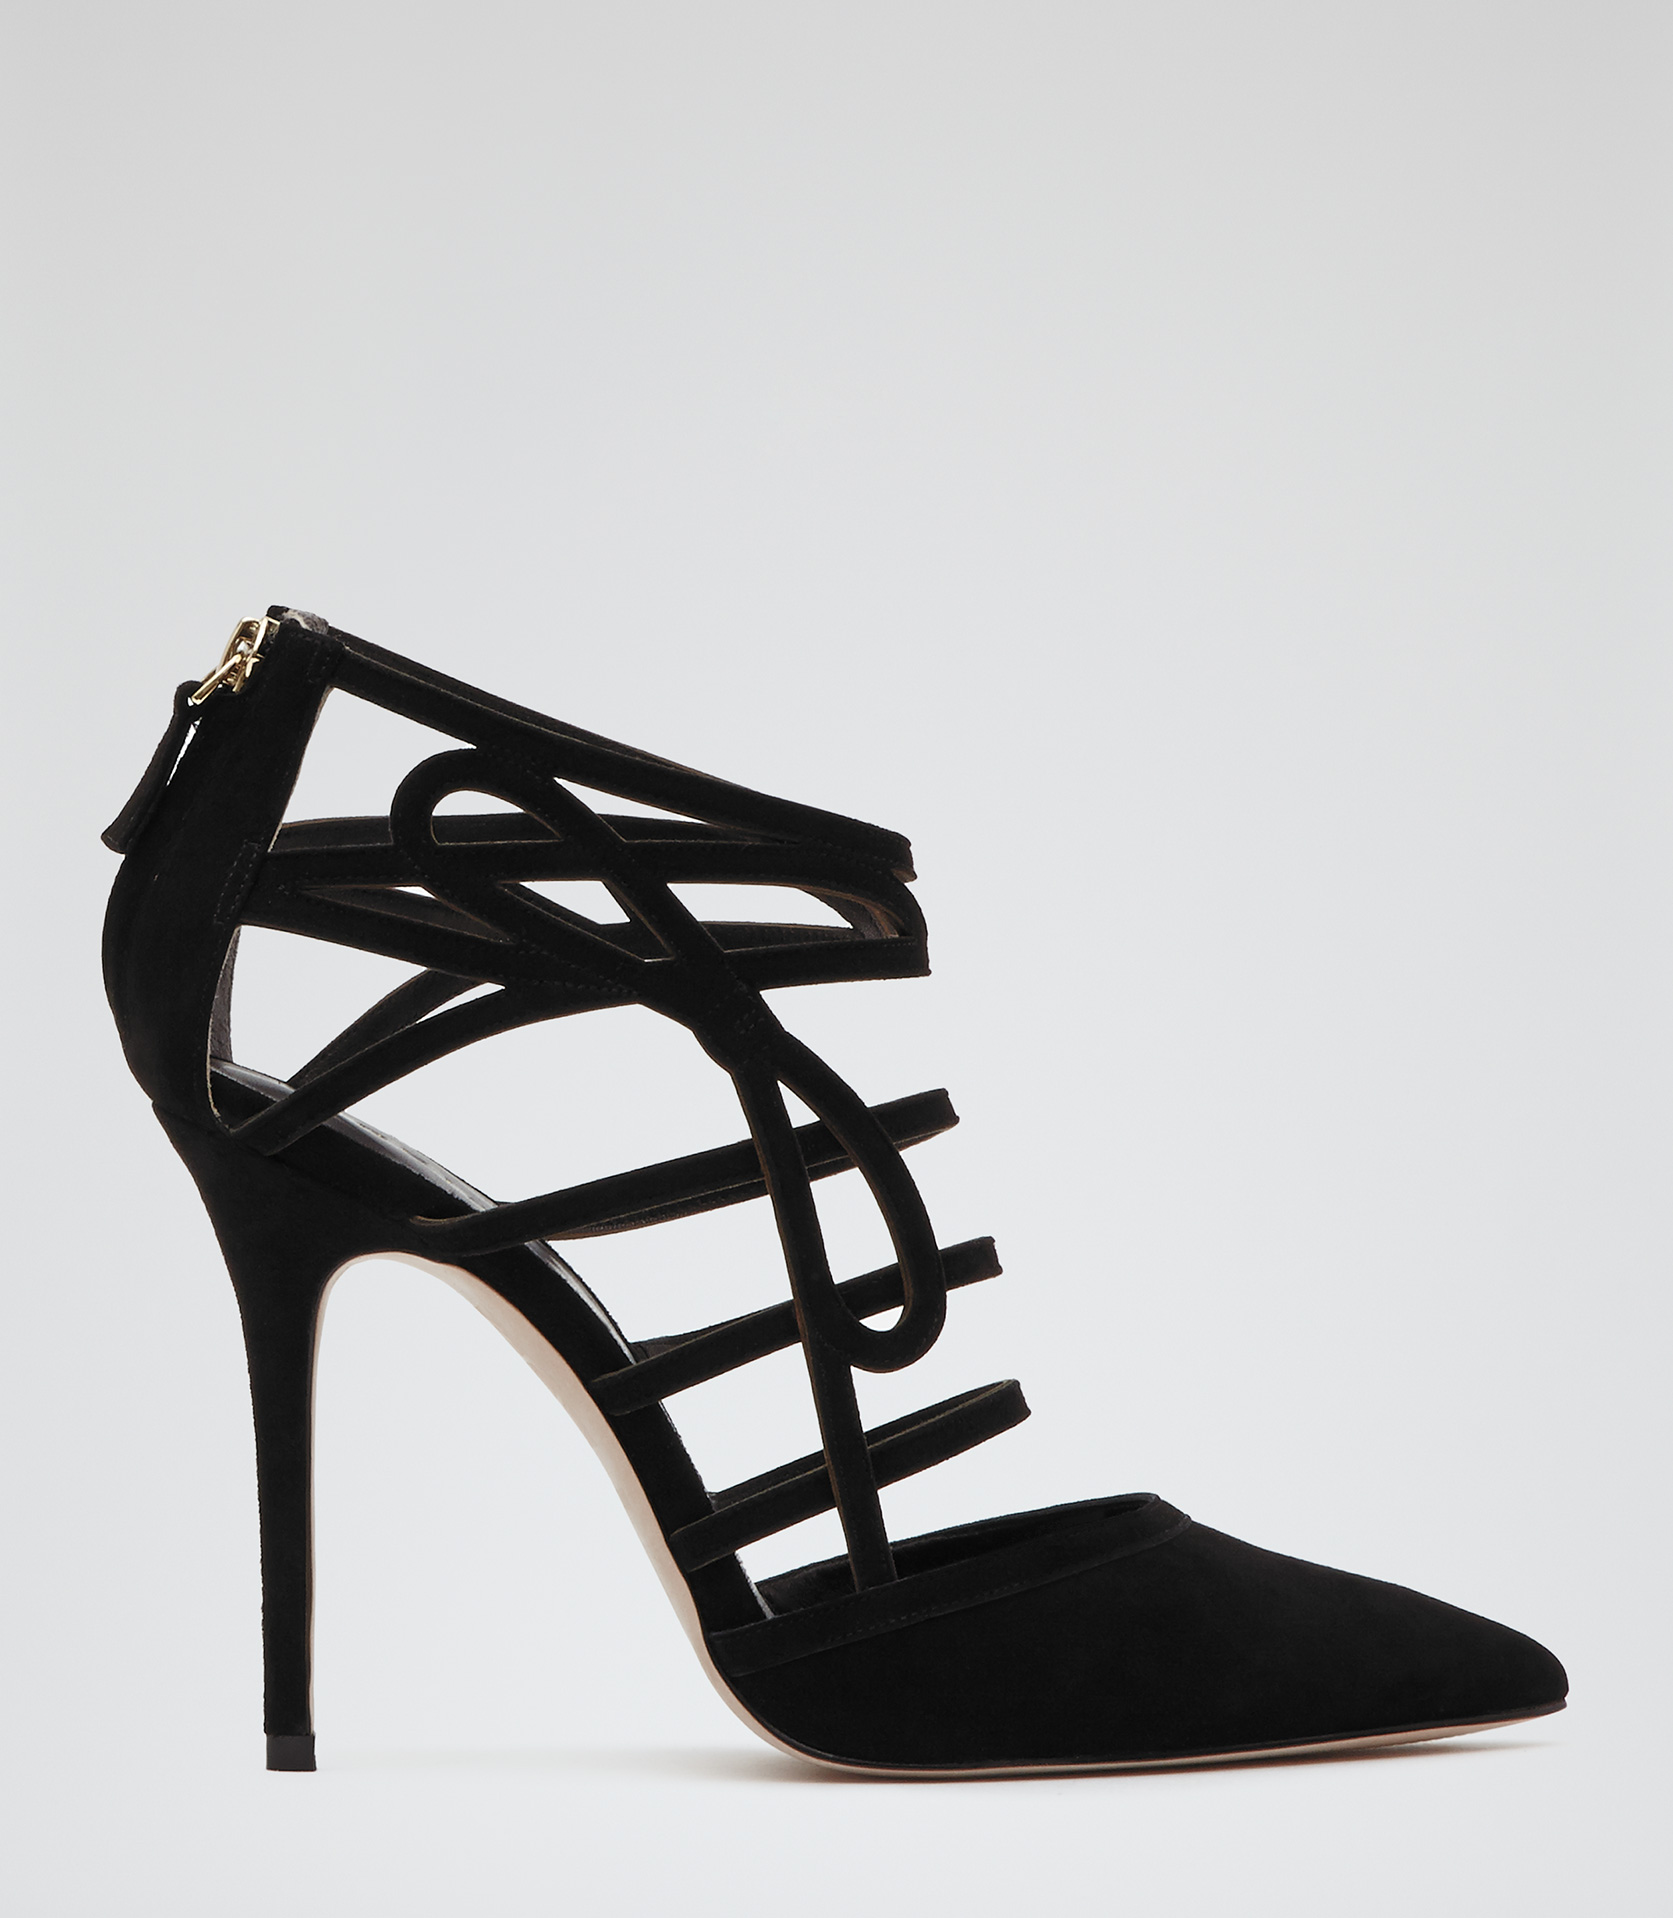 Isla Black Suede Lazer Cut Shoes - REISS